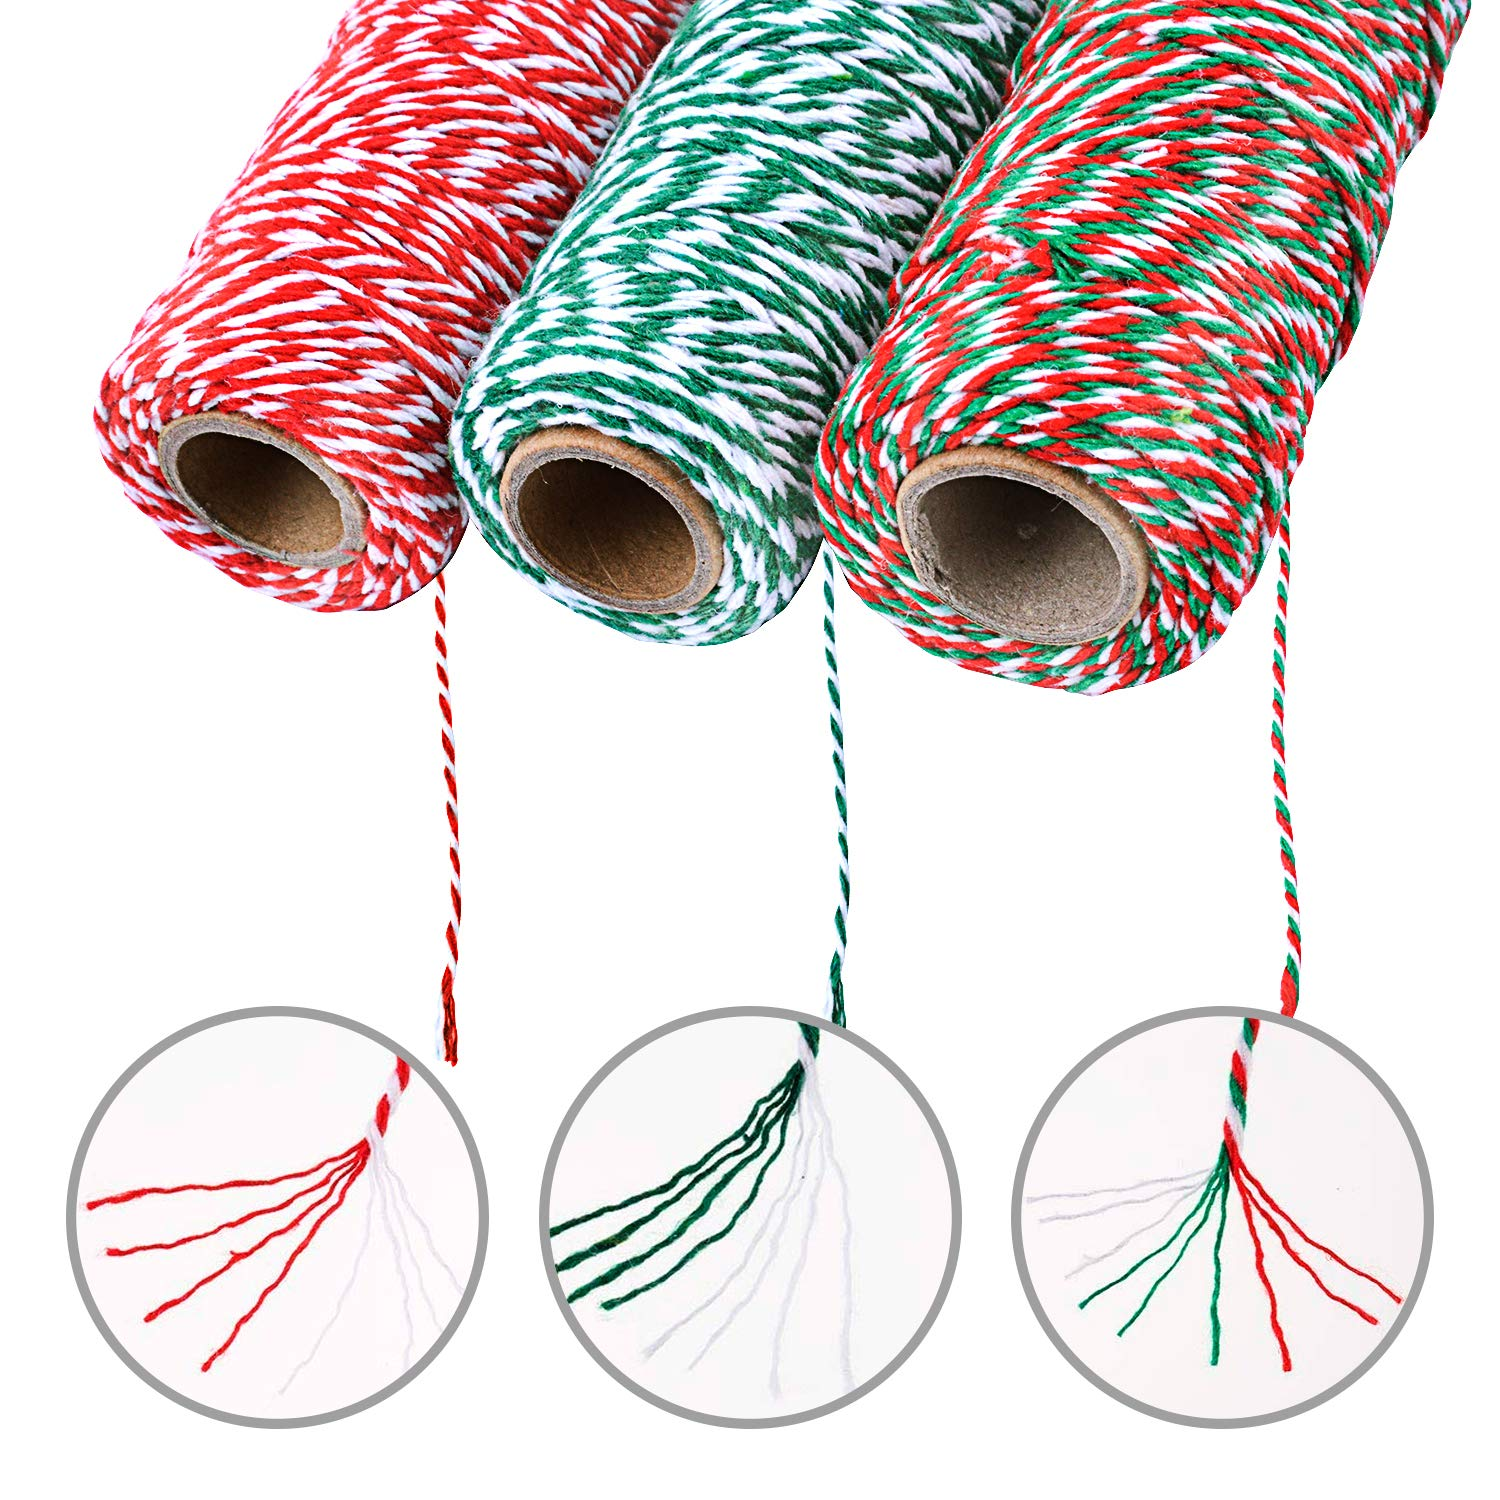 Style1 3 Pieces 2 mm Cotton String,Christmas Twine for Gift Wrapping,Arts Crafts,492 Feet Totally,3 Colors